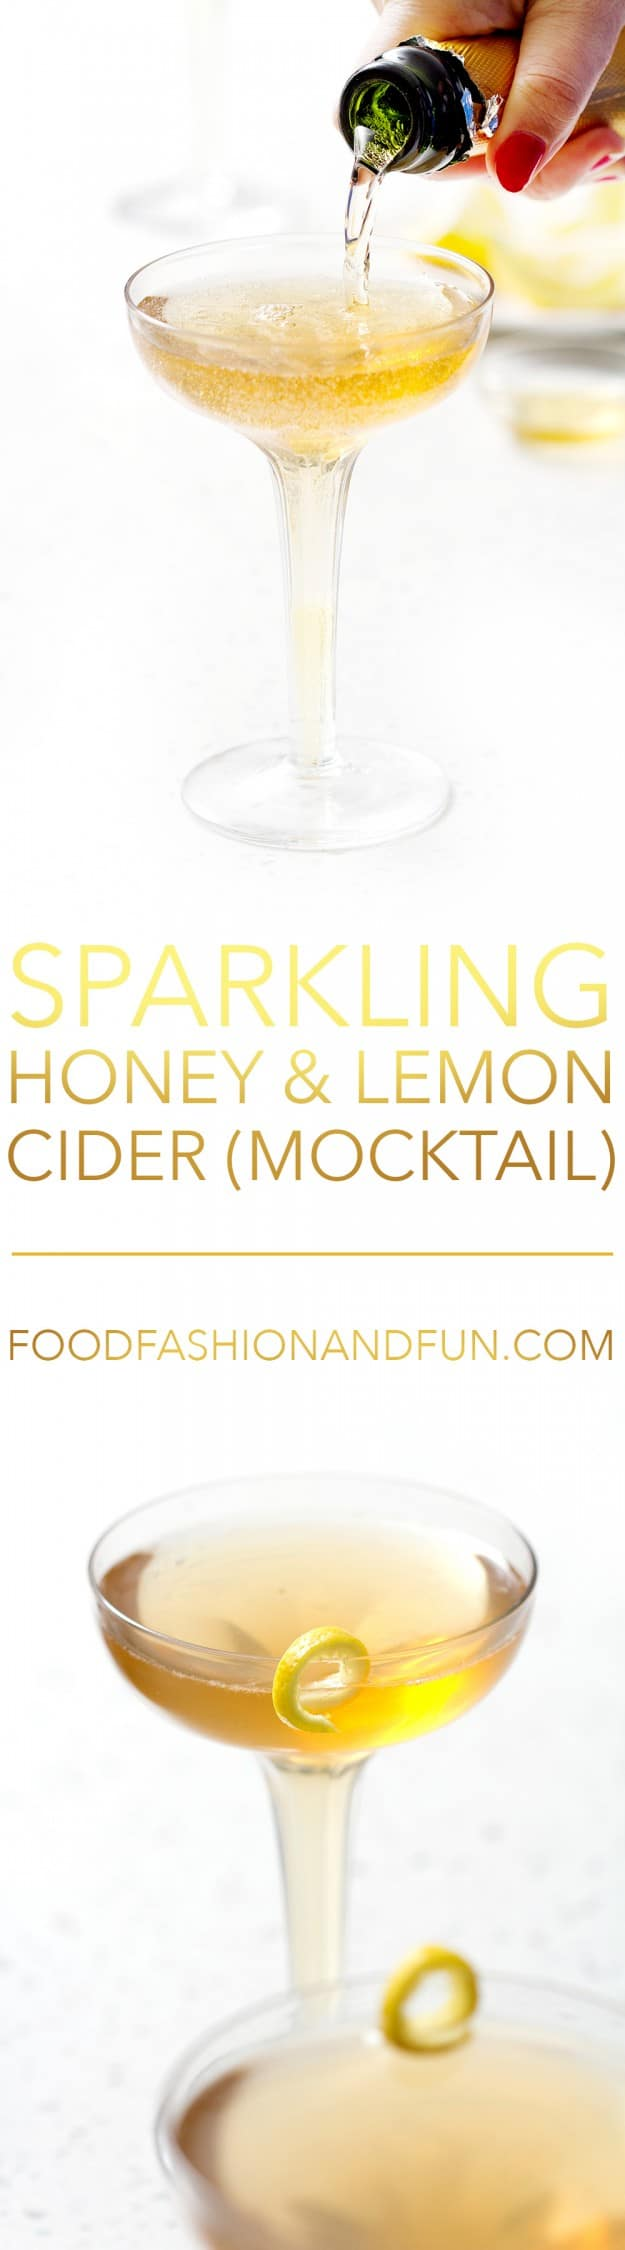 Sparkling Lemon and Honey Cider (mocktail) \ Food Fashion and Fun